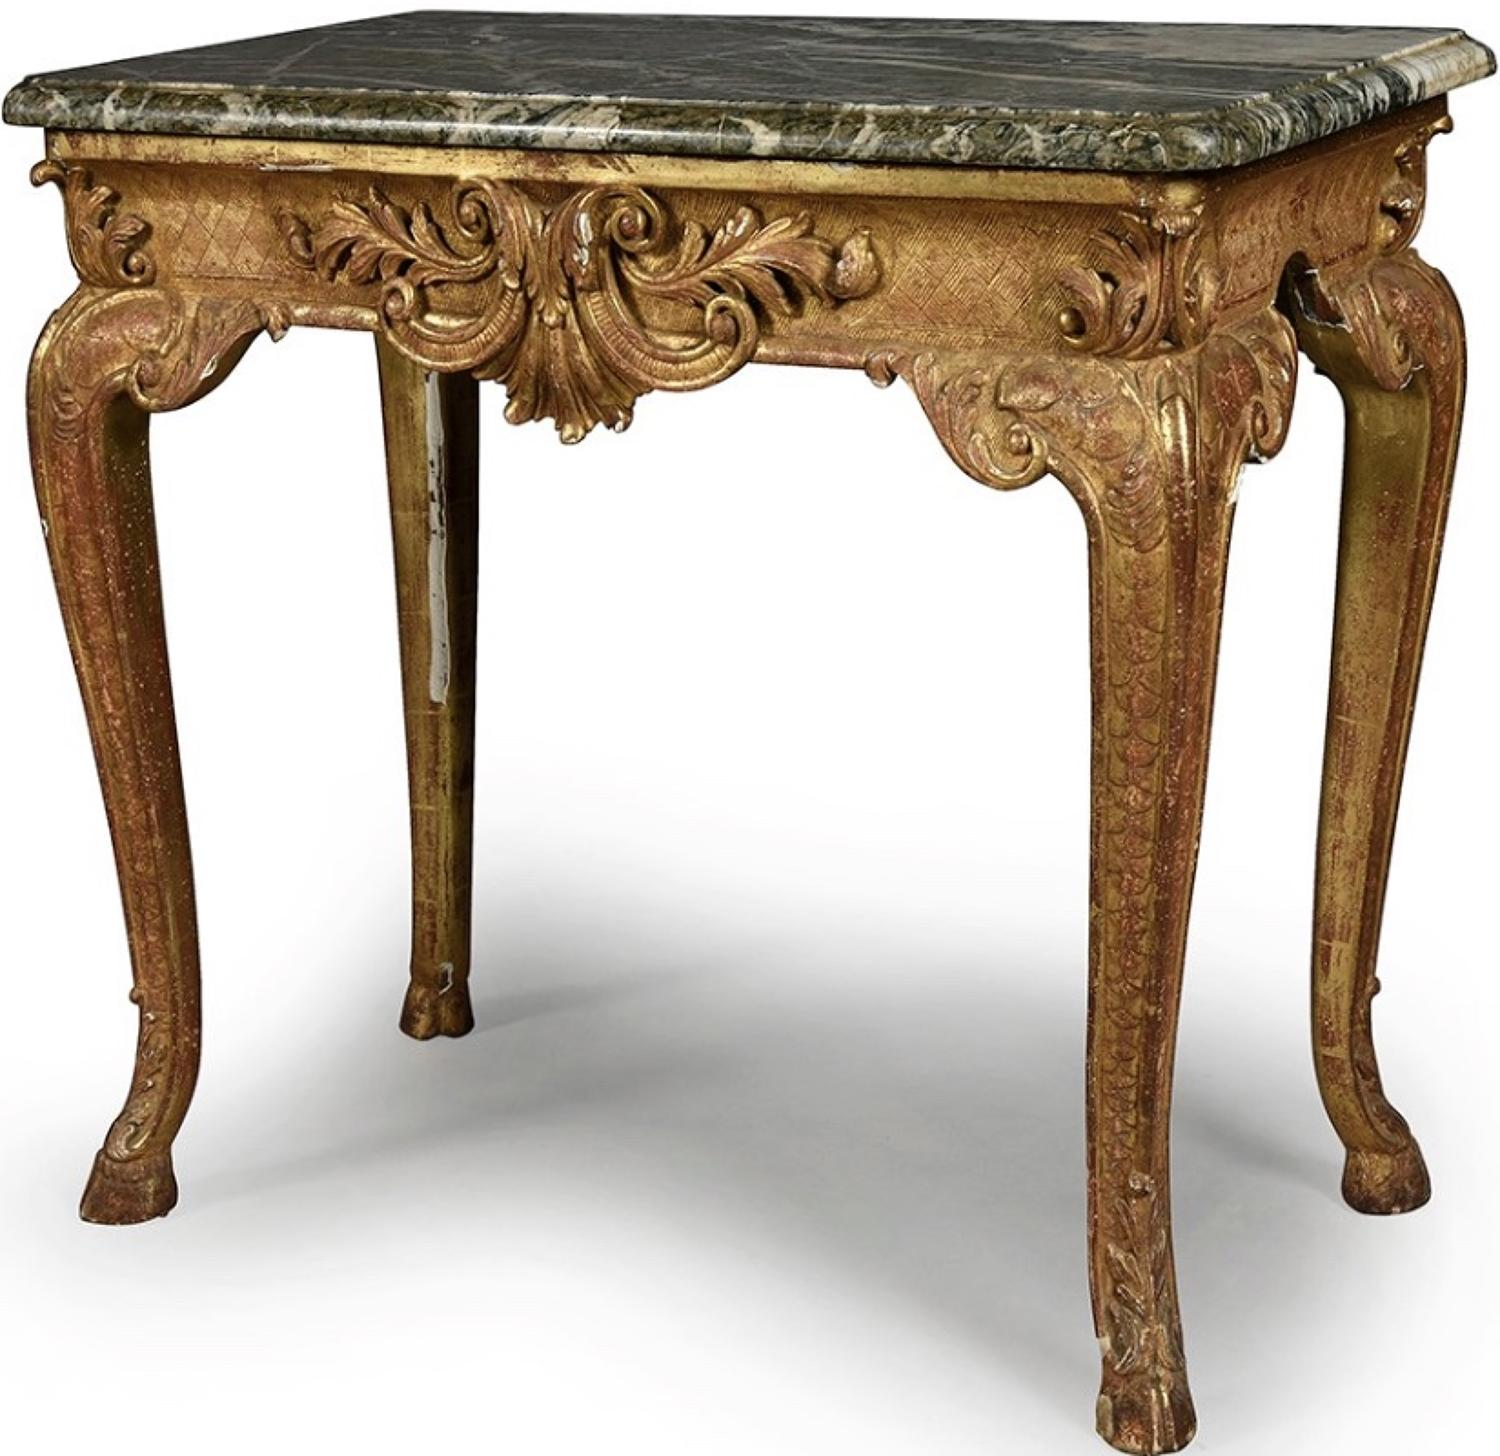 REGENCE PERIOD TABLE de MILIEU